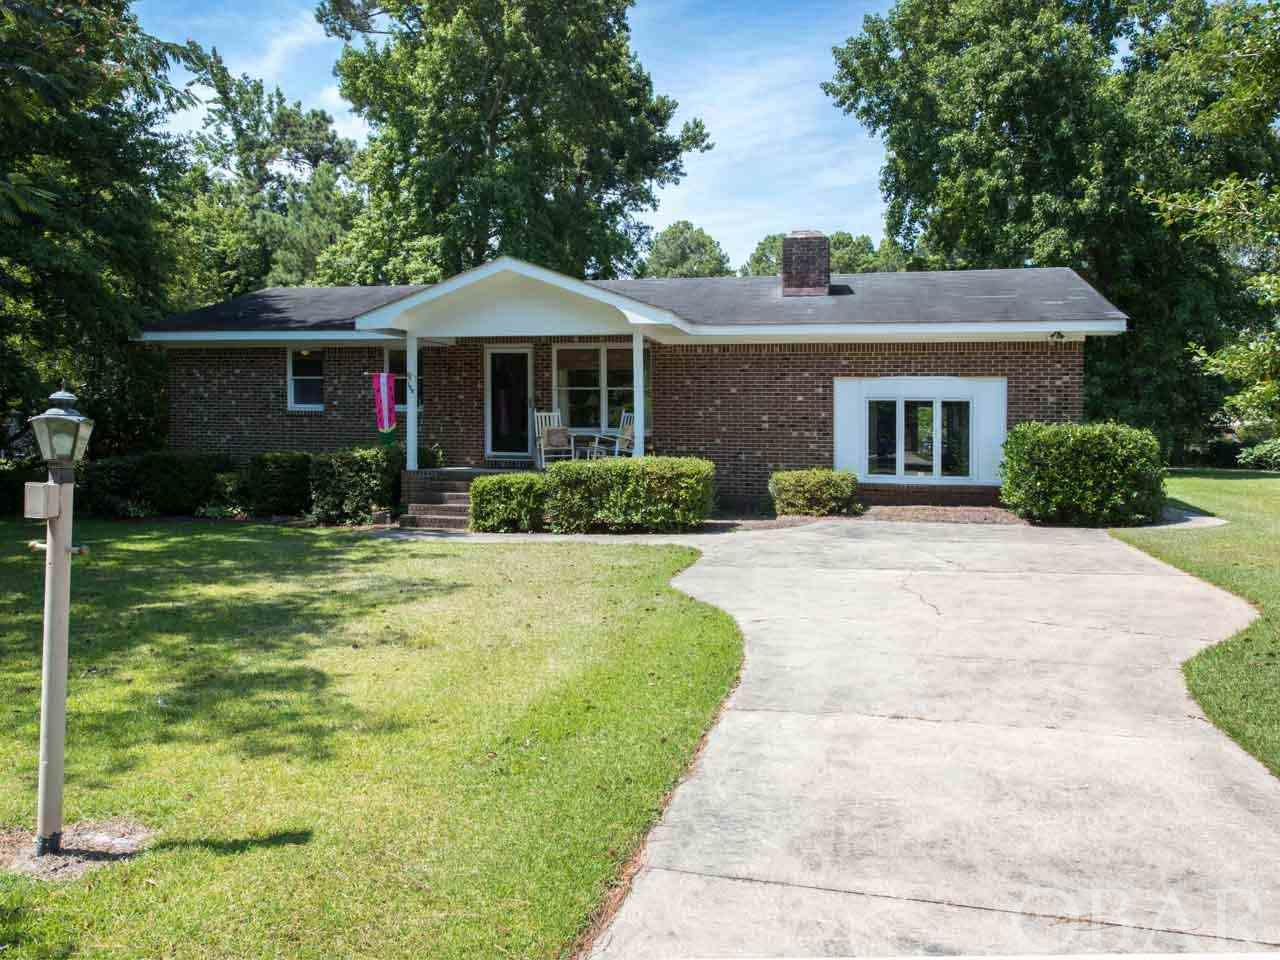 108 Magnolia Street,Manteo,NC 27954,3 Bedrooms Bedrooms,2 BathroomsBathrooms,Residential,Magnolia Street,101249